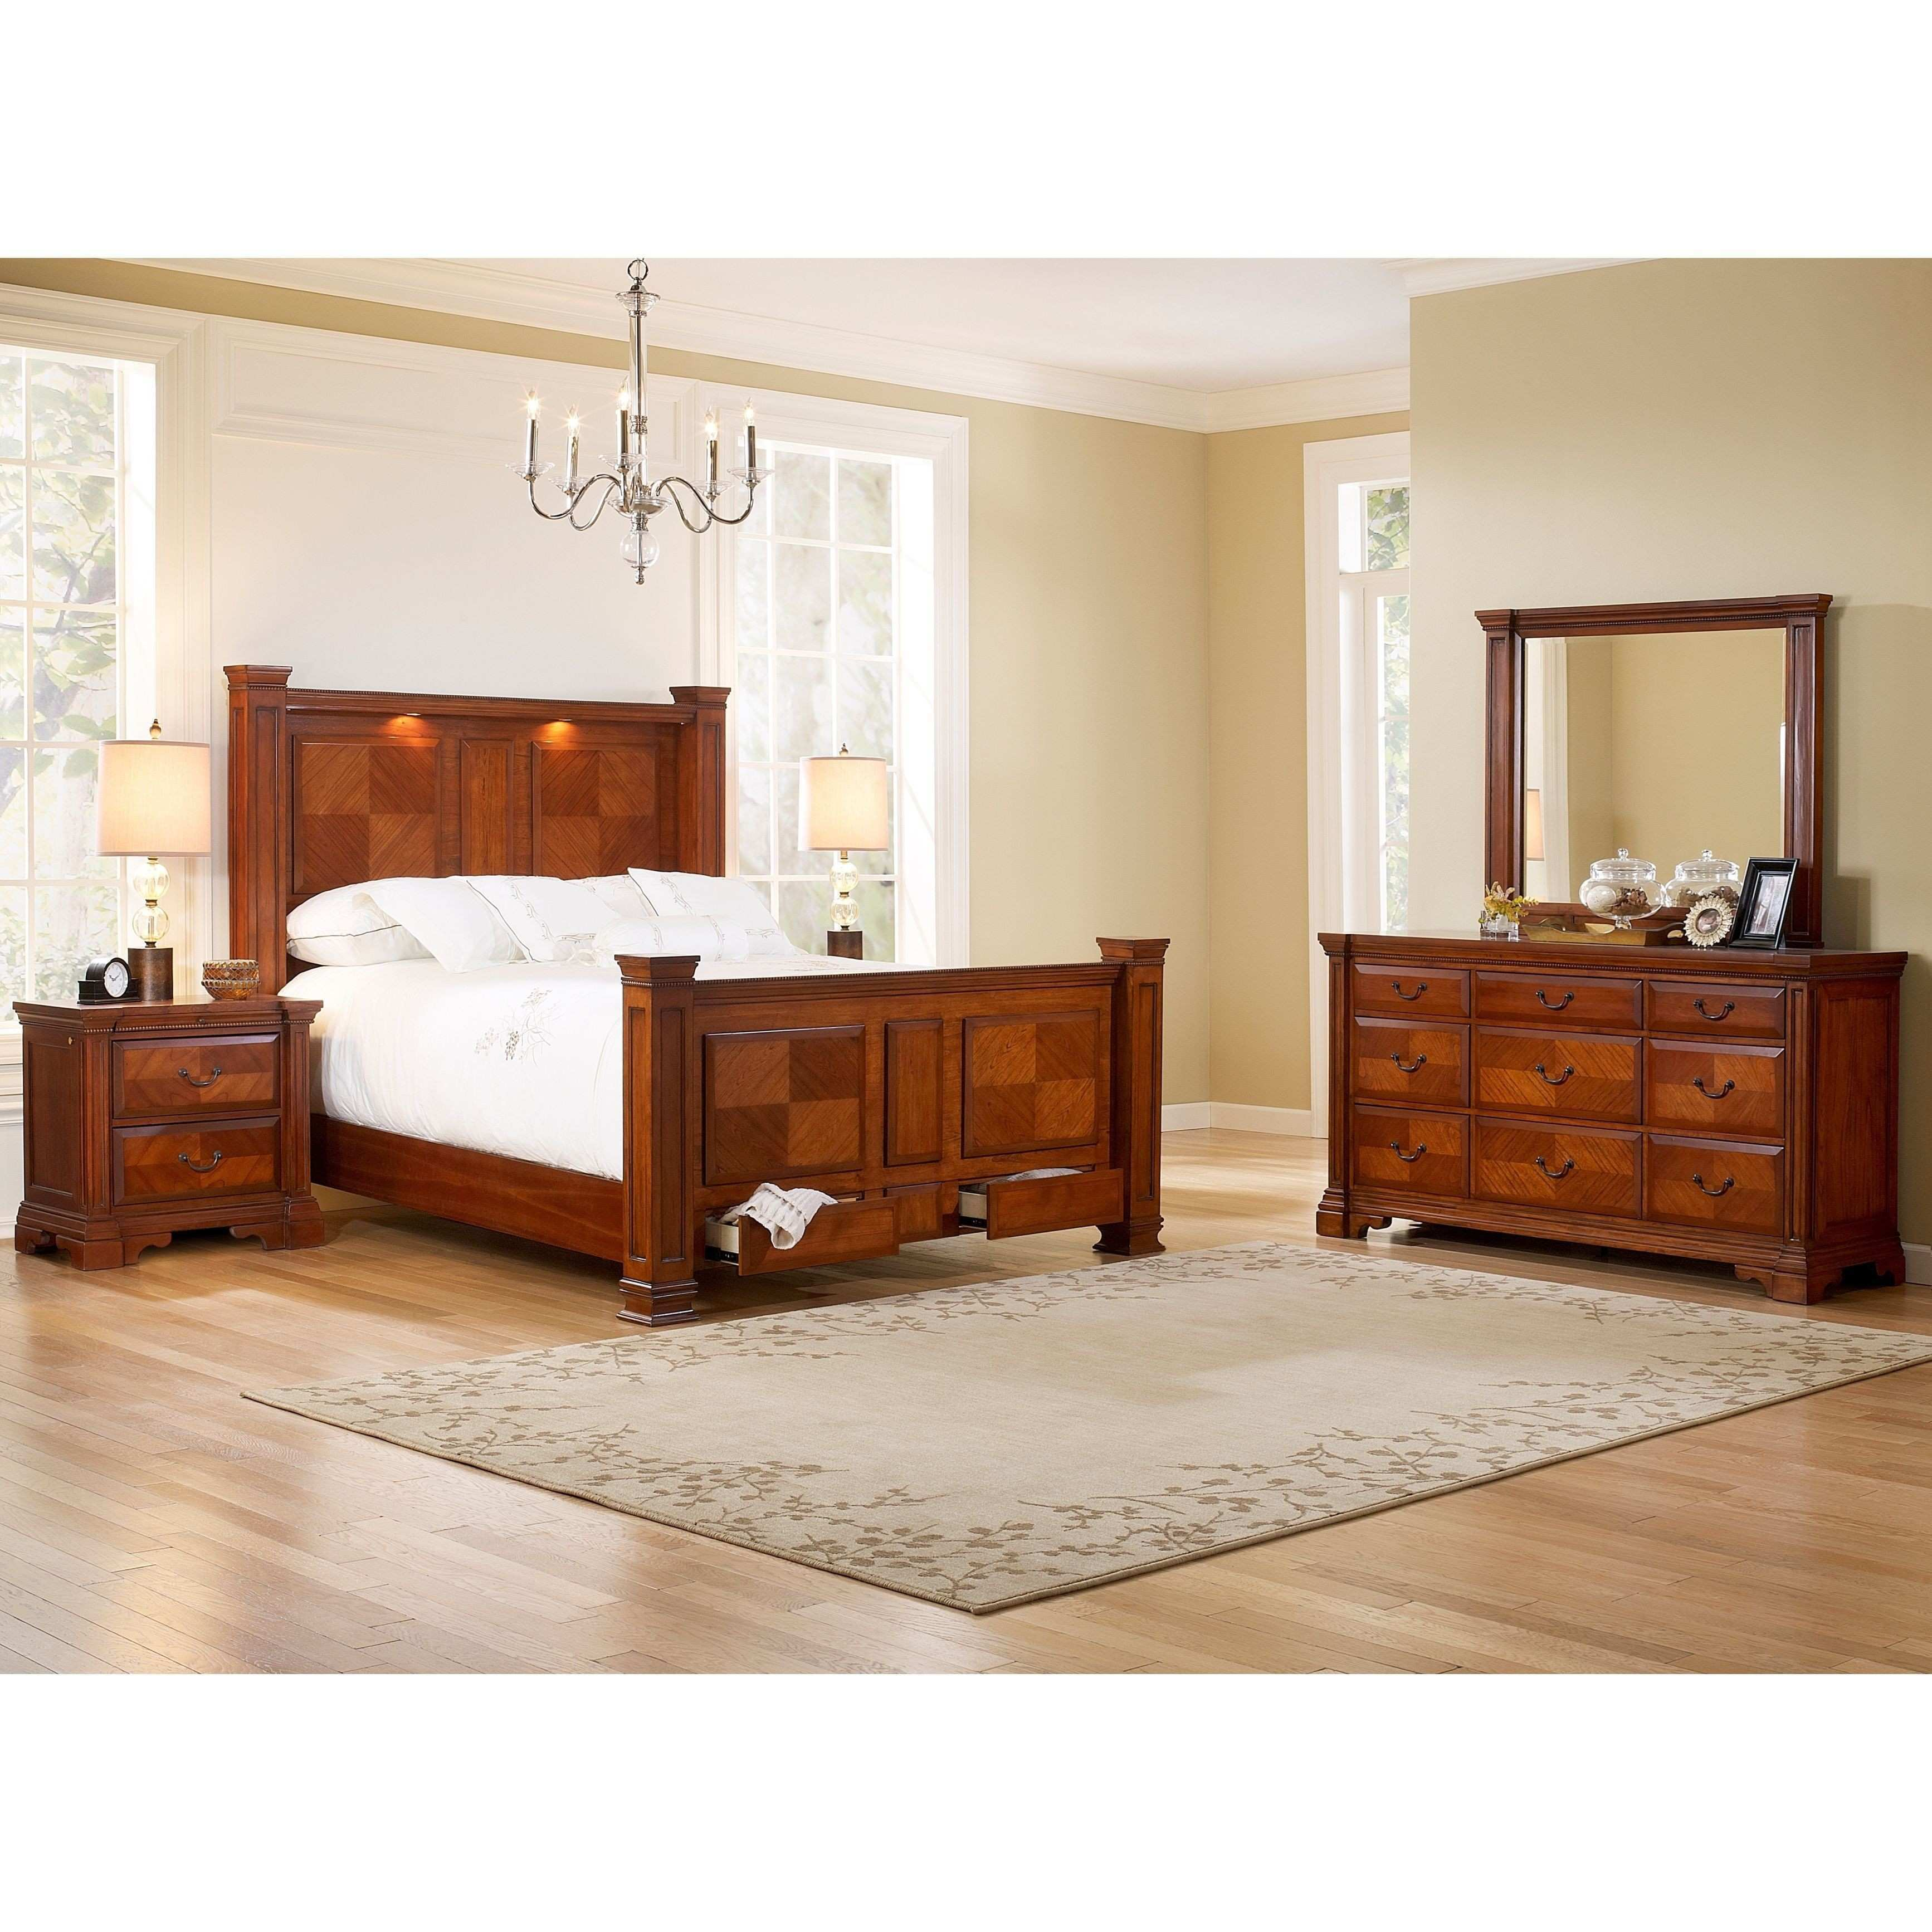 Where to Get Cheap Bed Frames Elegant Childrens Wooden Bedroom